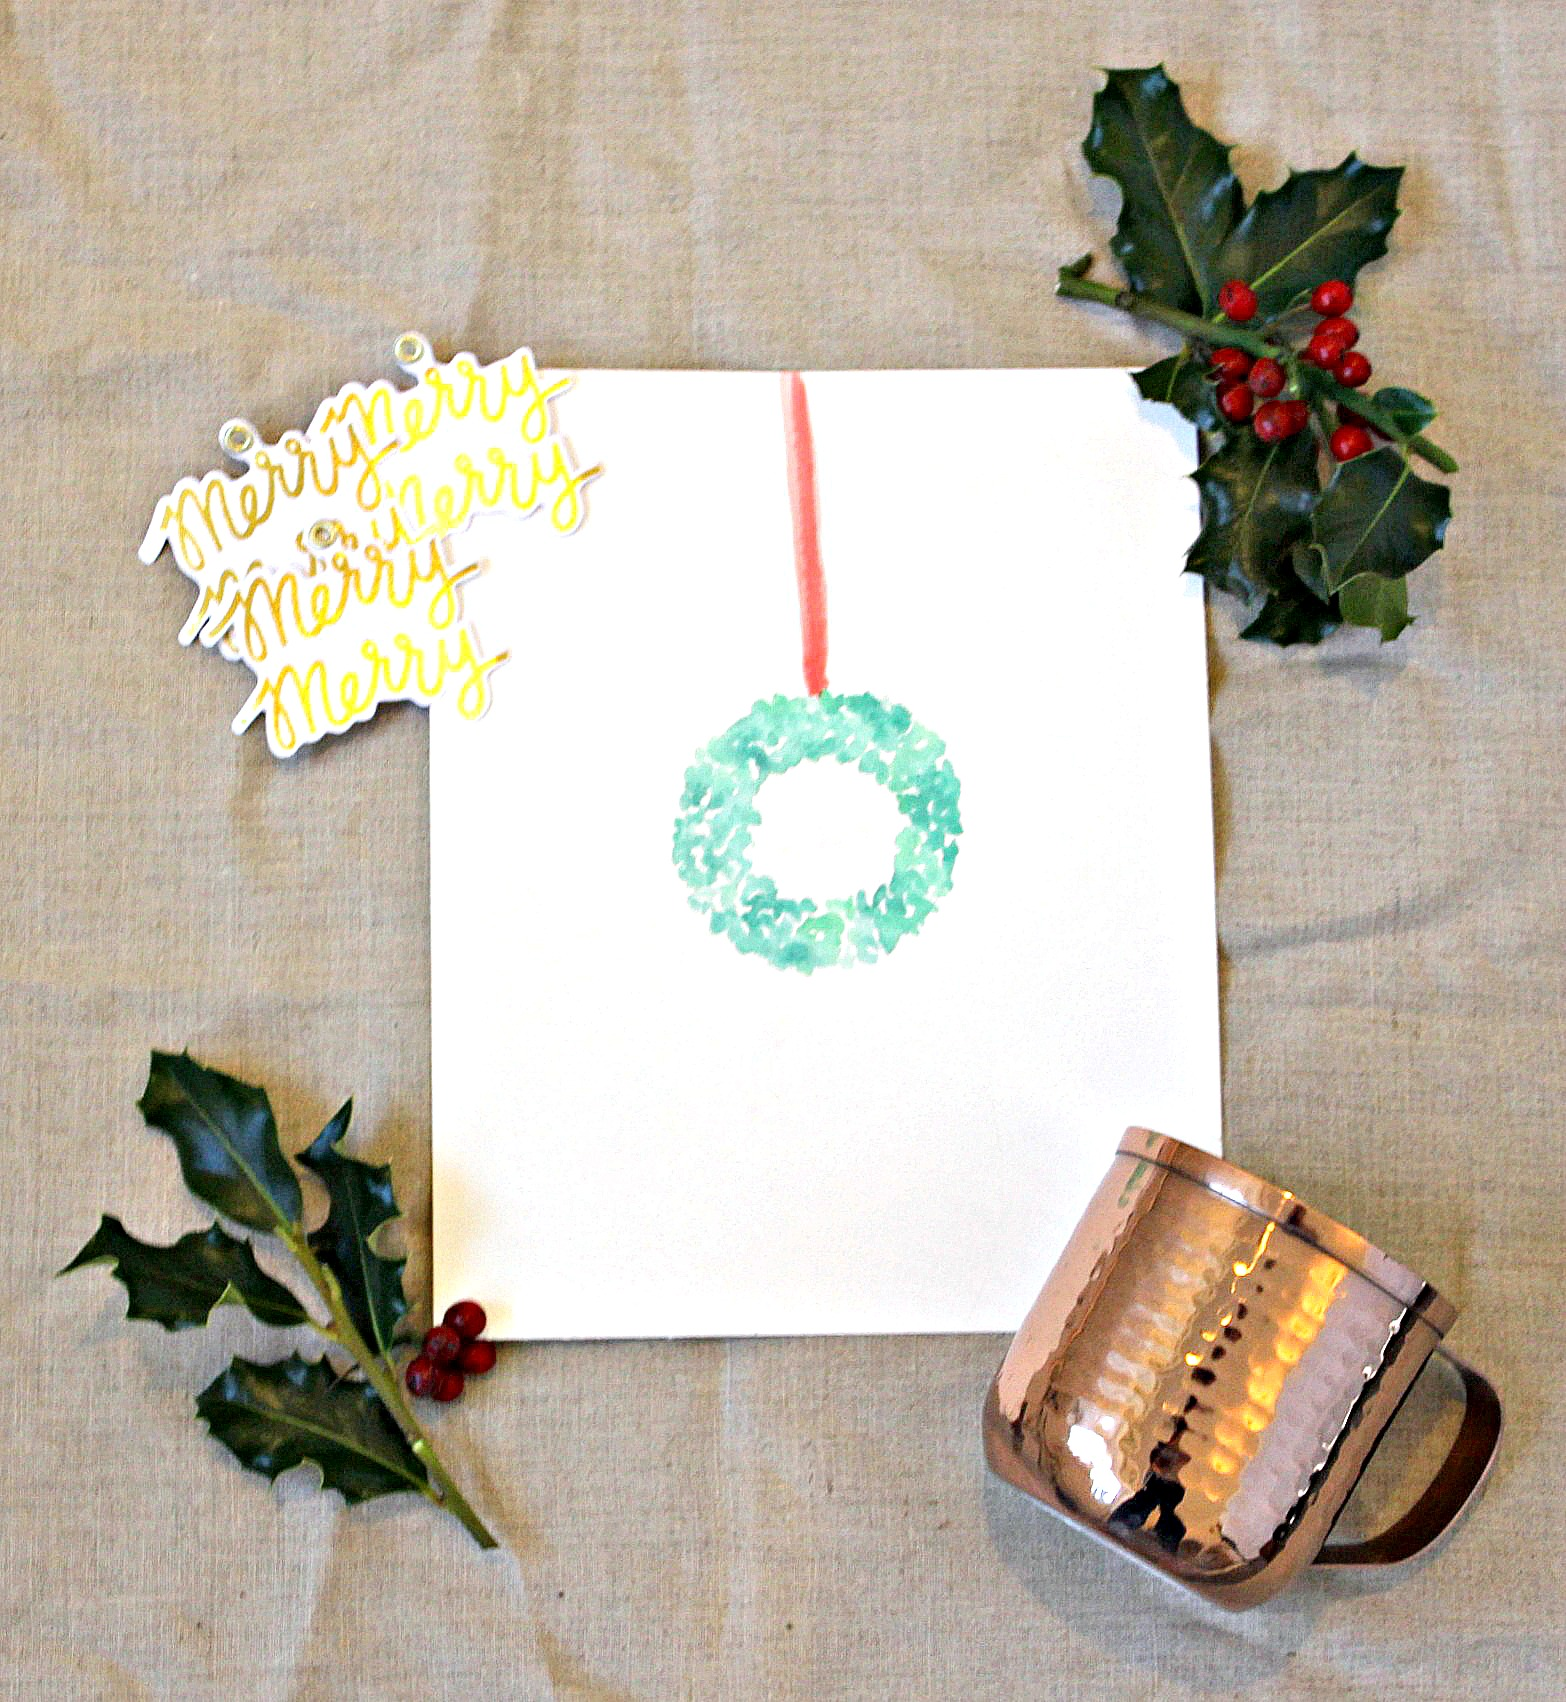 Wreath Christmas Print FINAL.jpg